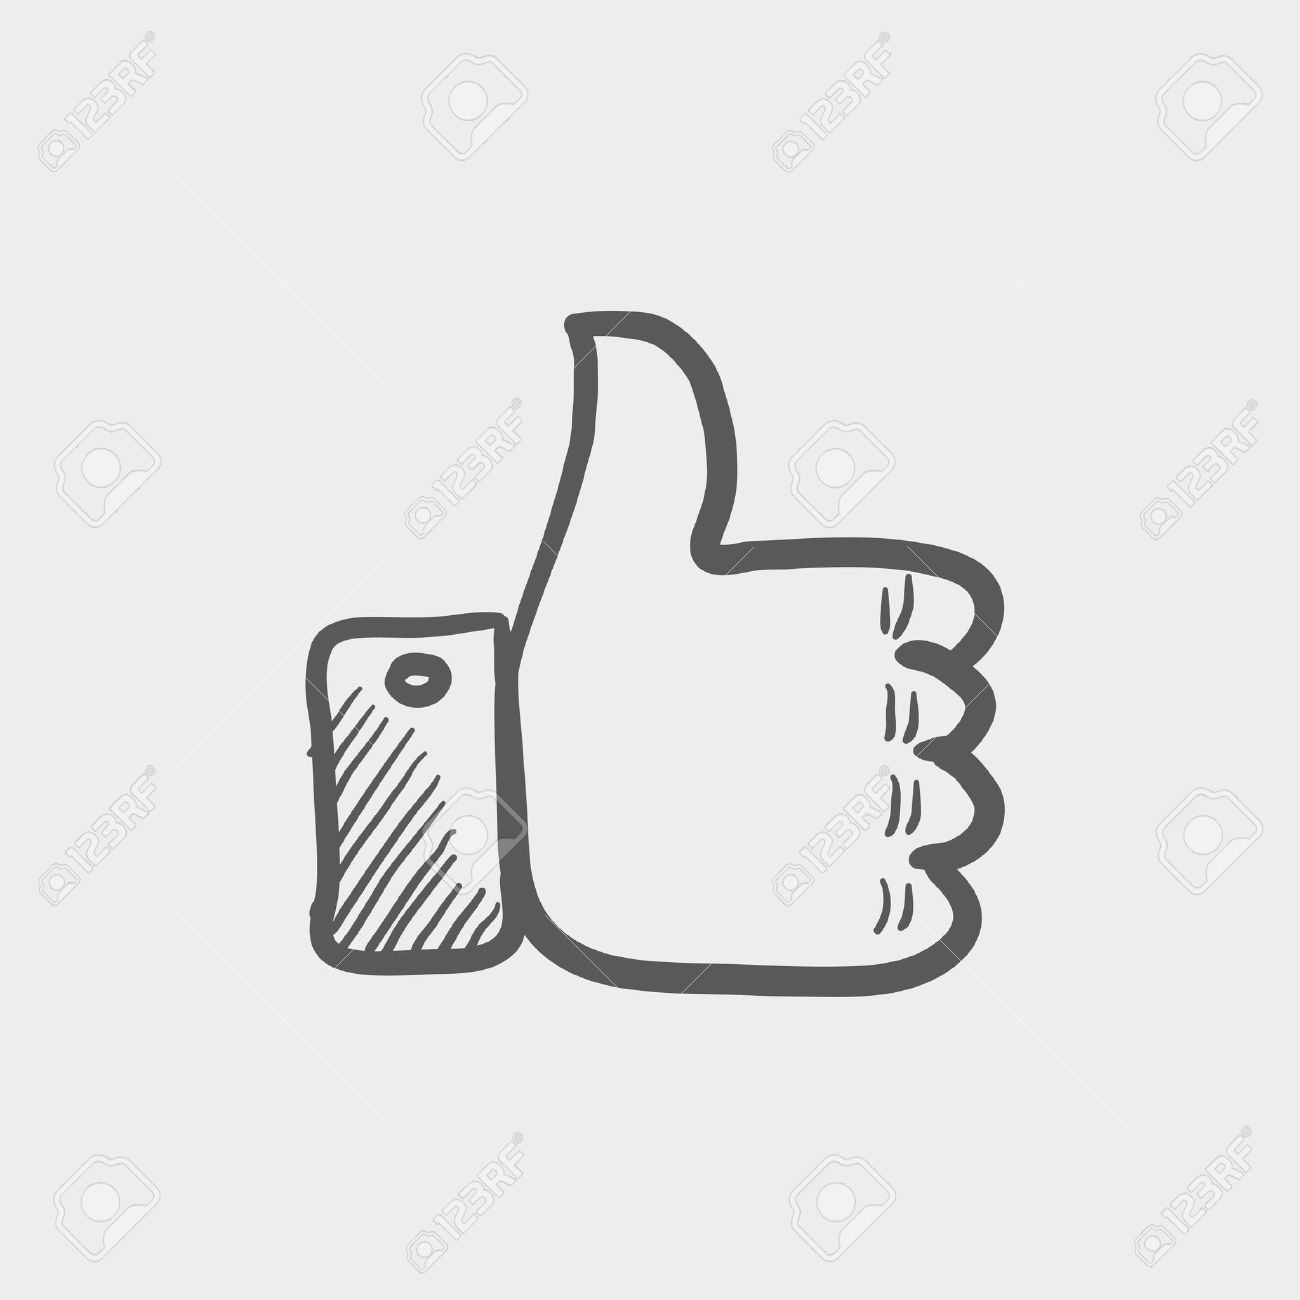 Thumbs up sketch icon for web and mobile. Hand drawn vector dark grey icon on light grey background. Banque d'images - 42981296